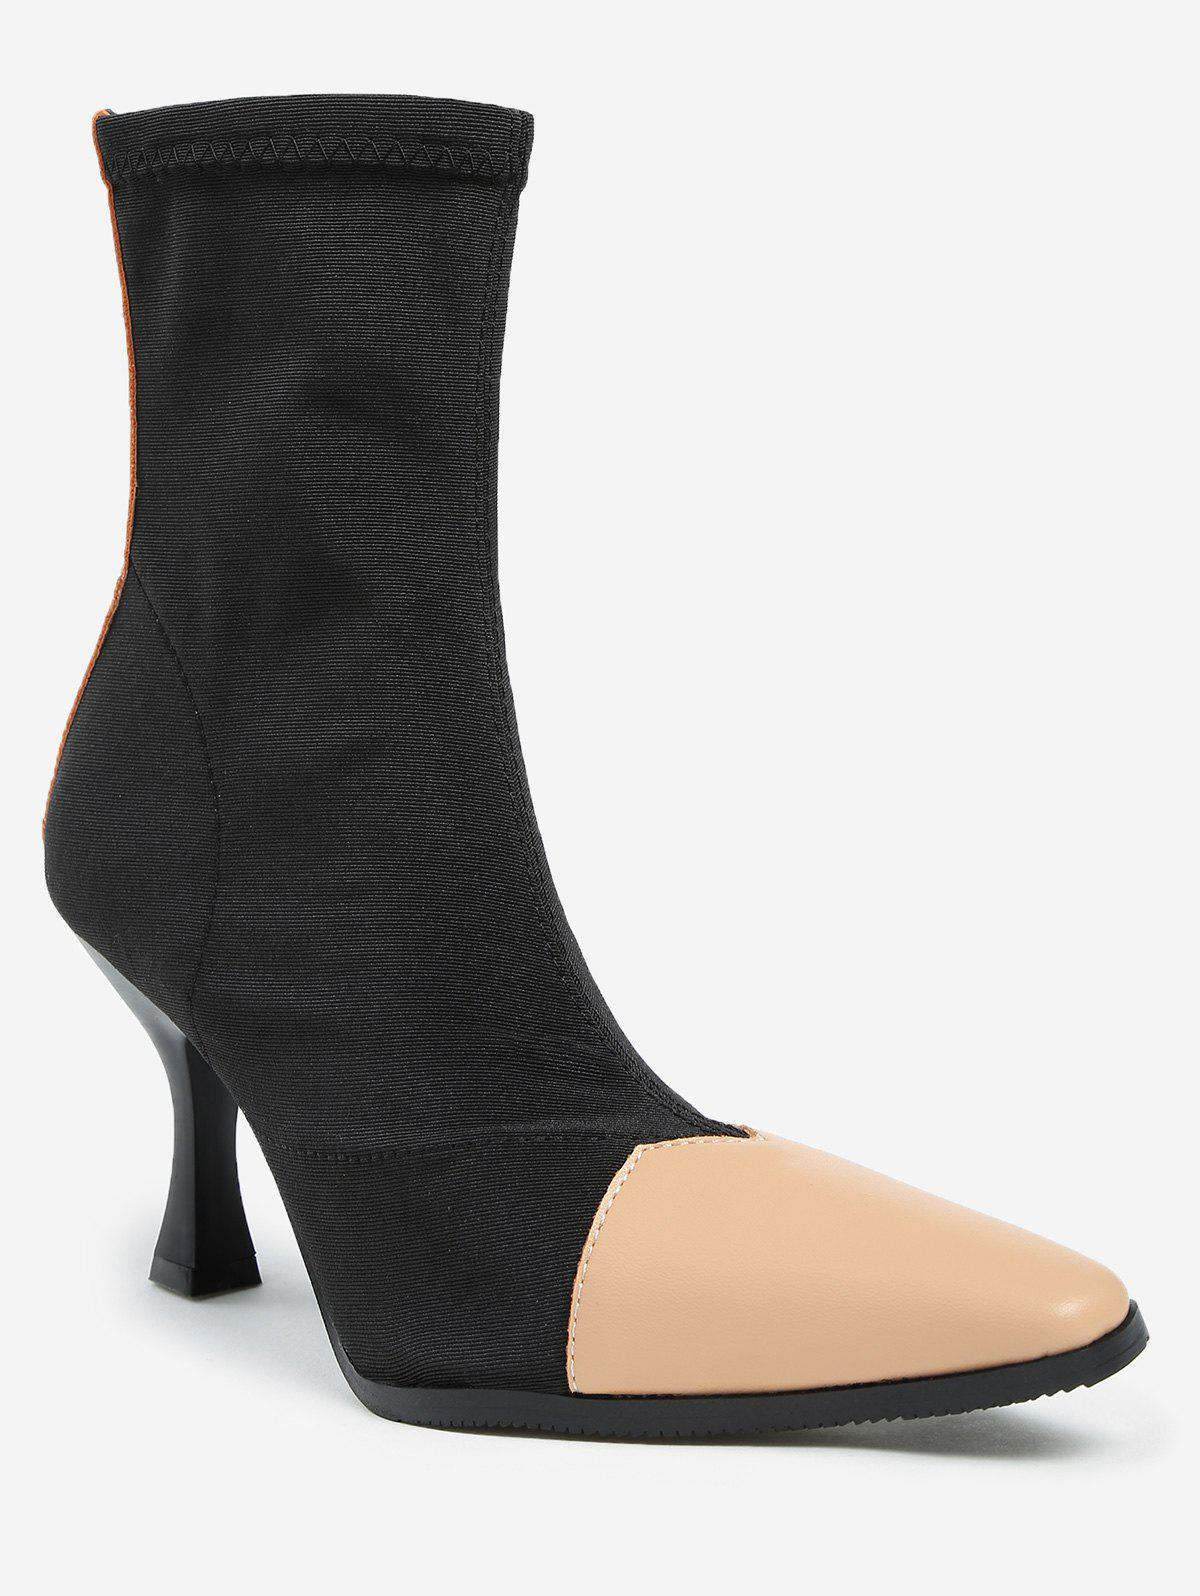 Pointed Toe Cap High Heel Ankle Boots фото